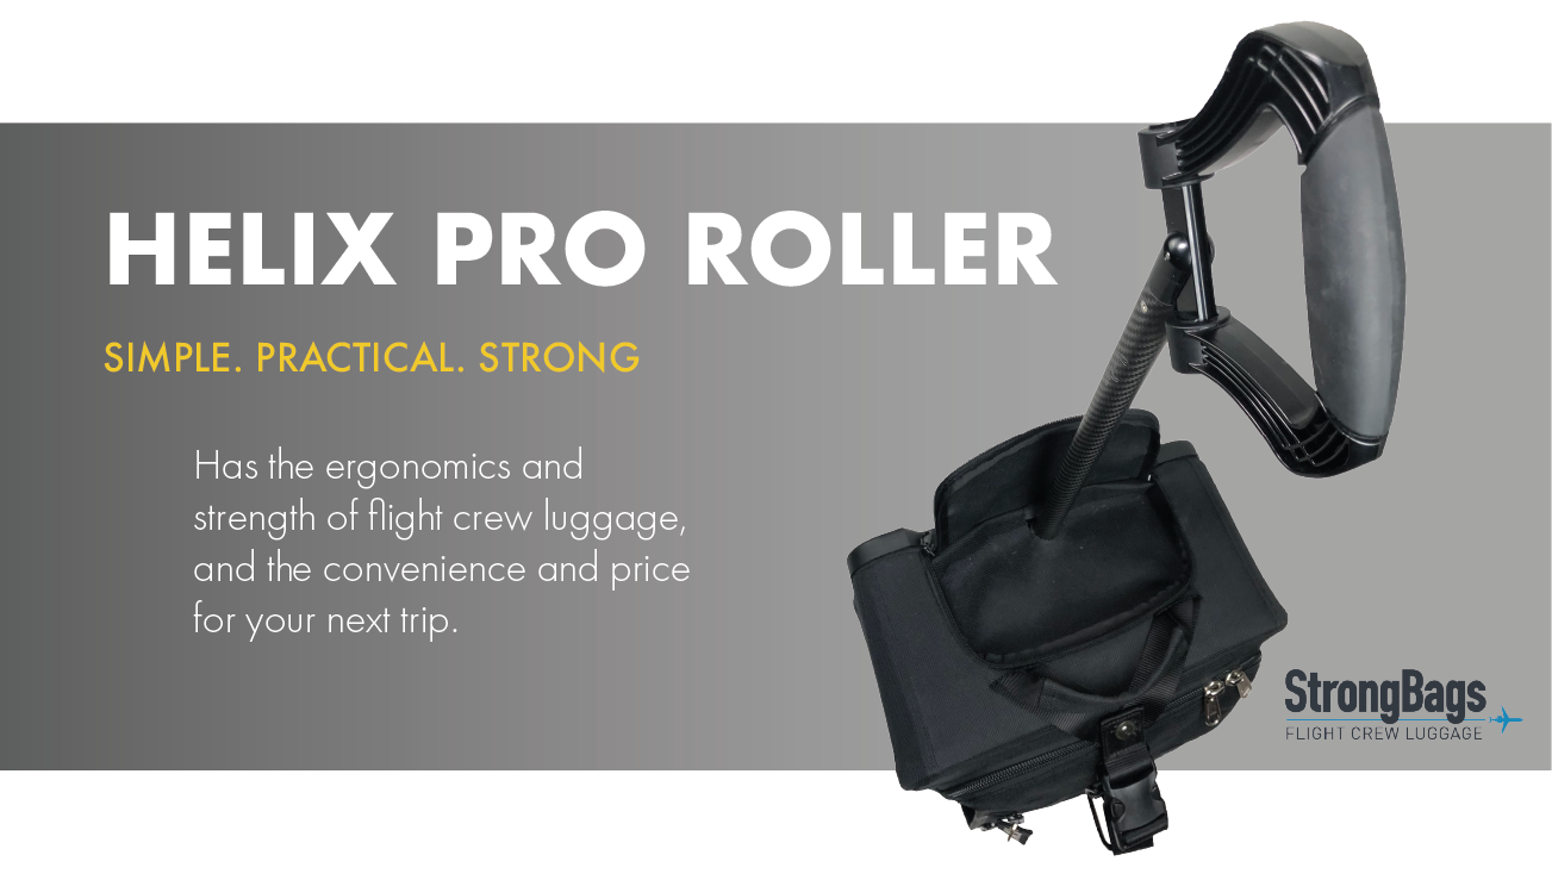 Simple, Practical, Strong. Introducing Flight Crew Luggage for Everyone.